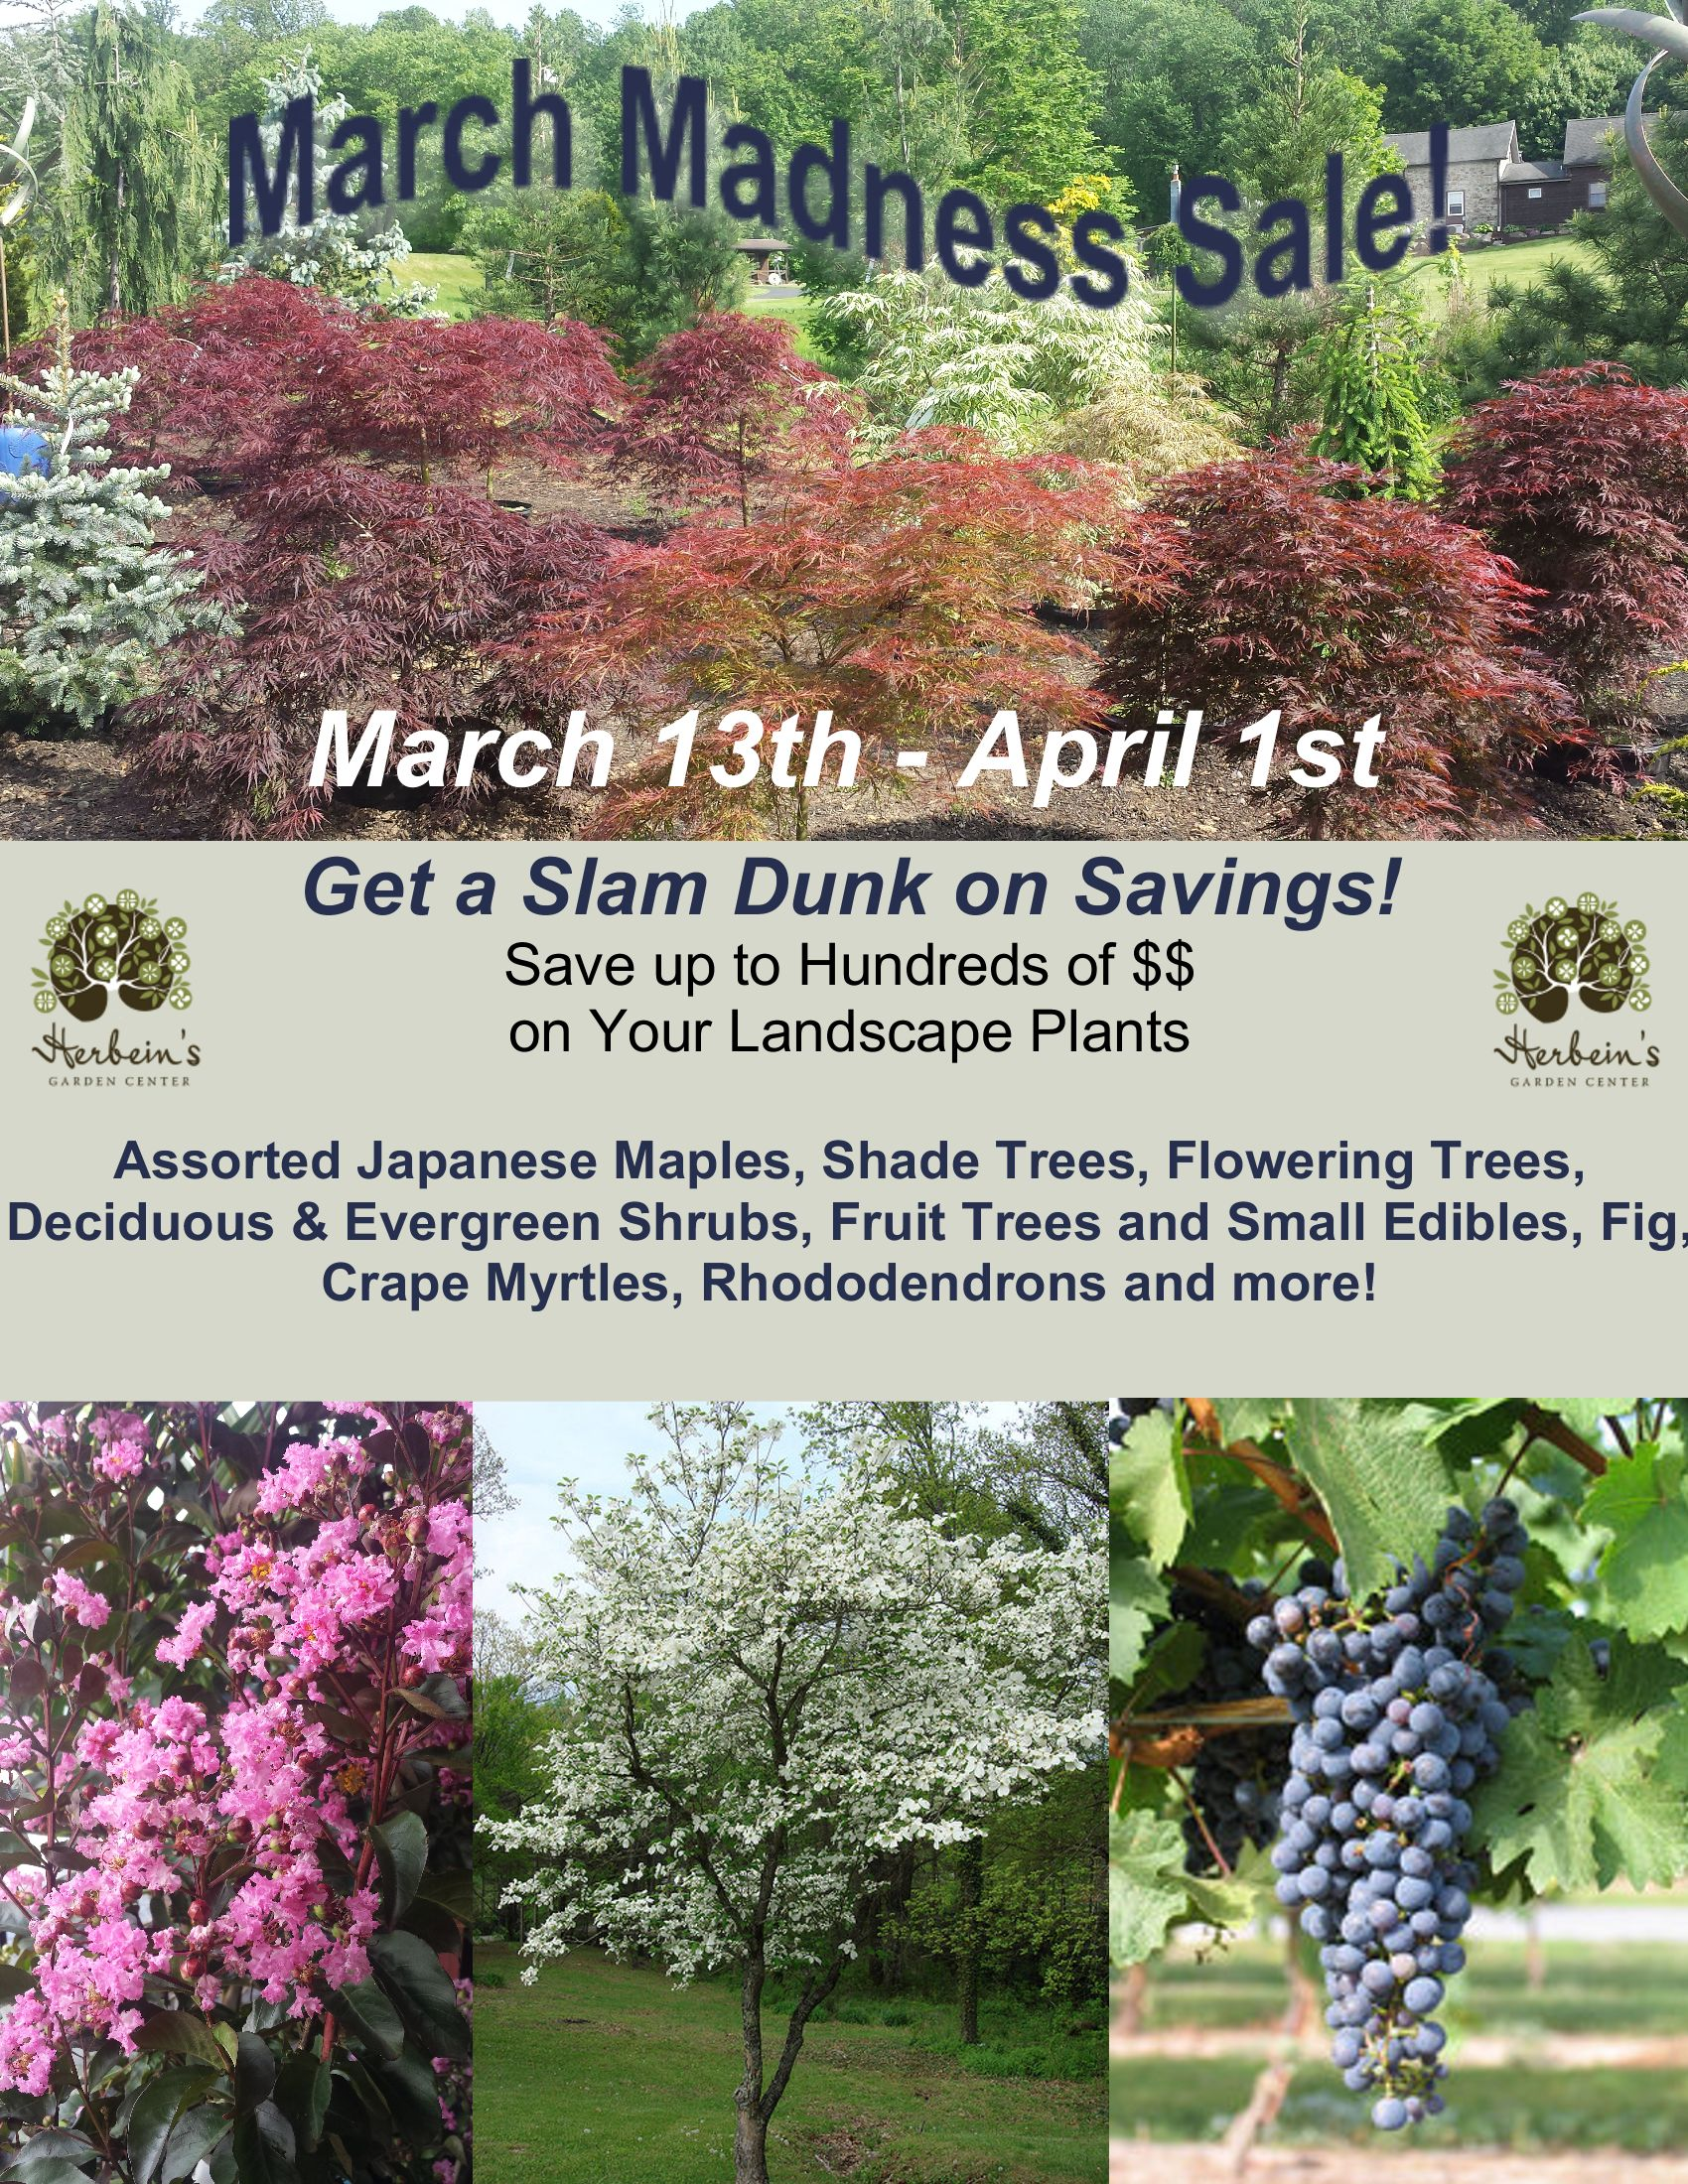 Herbeins Garden Center March Madness Sale Trees Shrubs Fruit